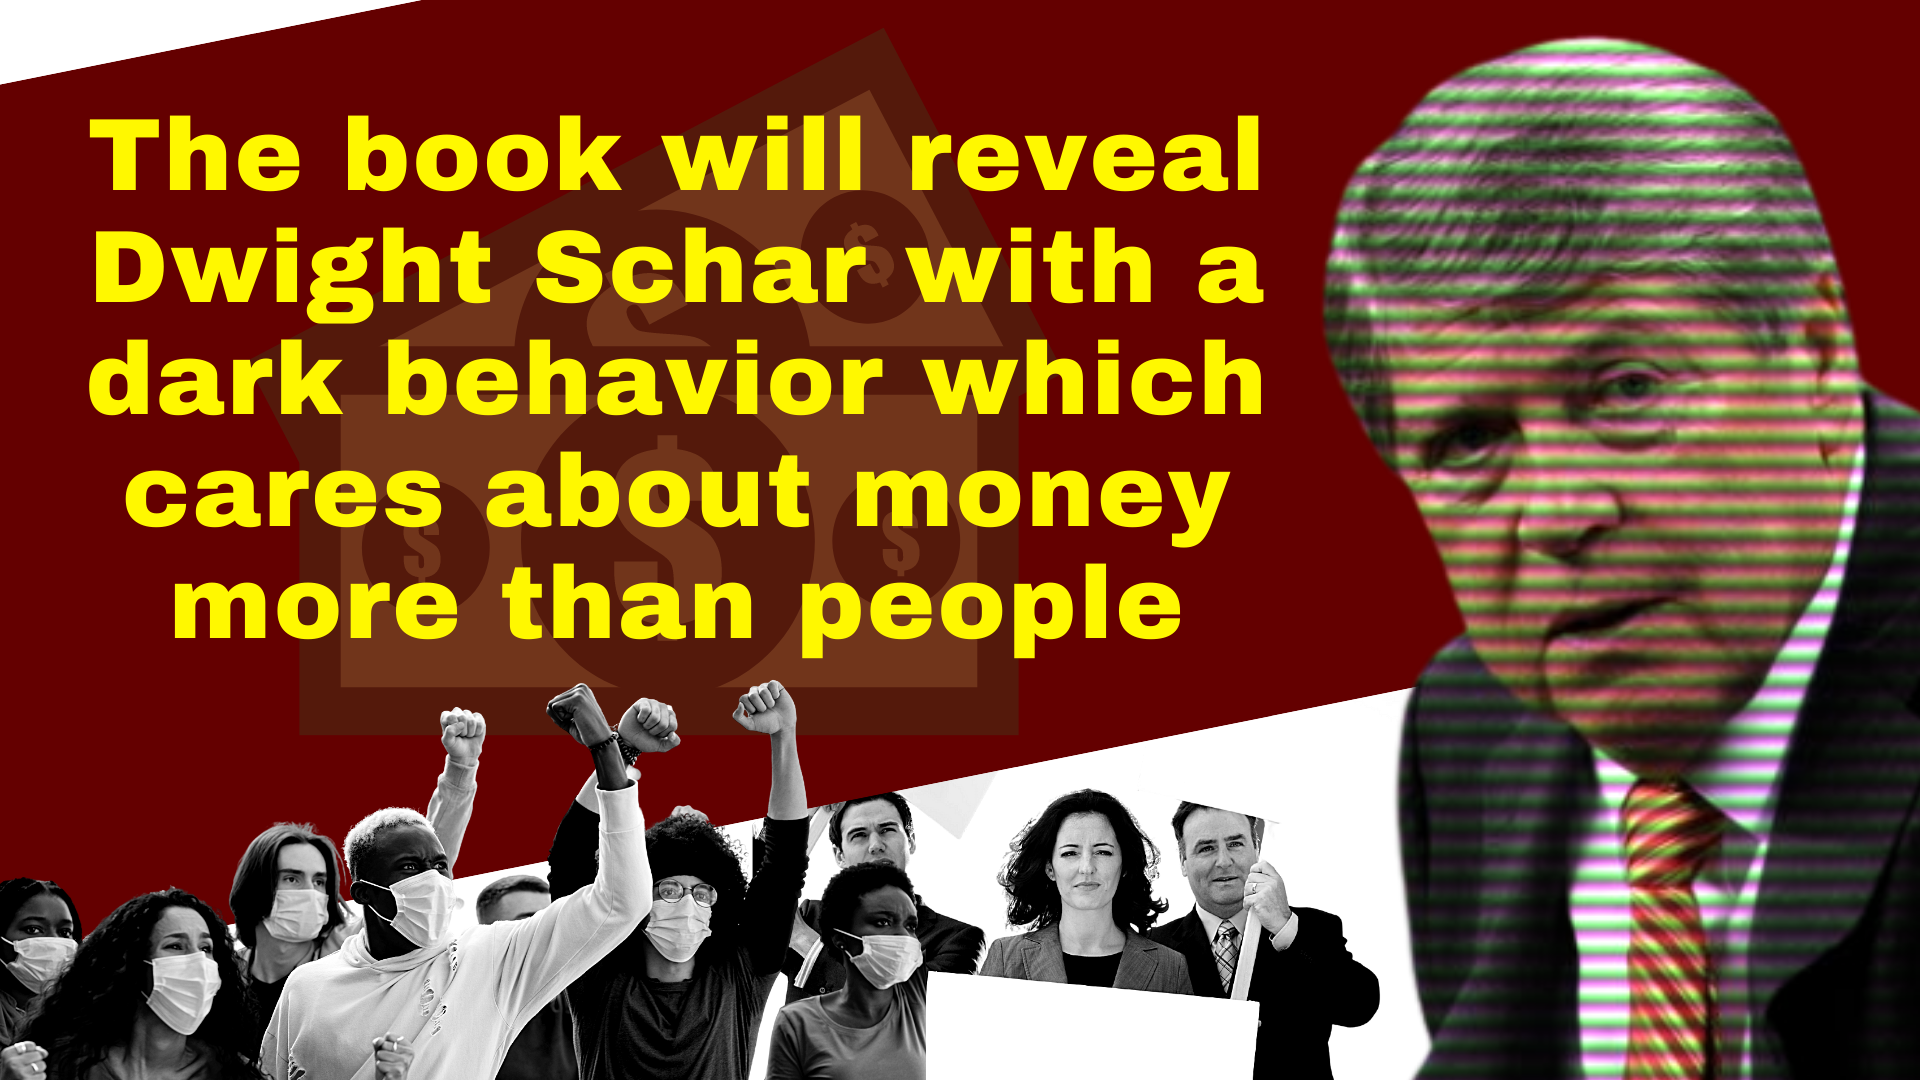 The book will reveal that Dwight Schar with a dark behavior which care about money more than people